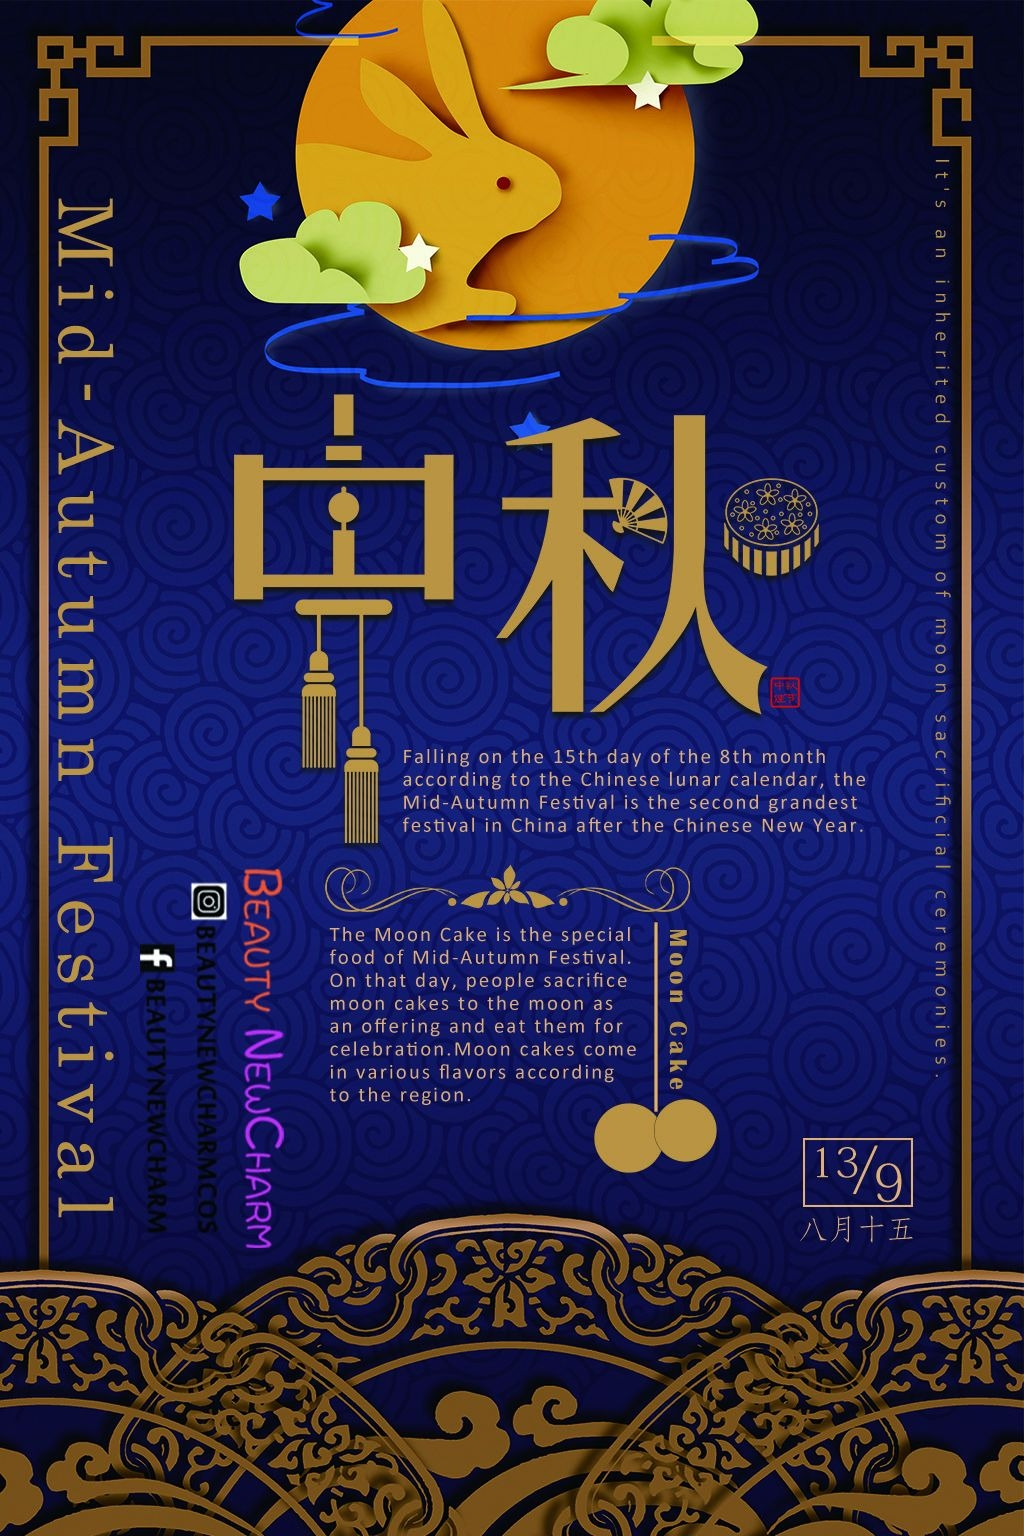 mid autumn festival | mid autumn festival, festivals in